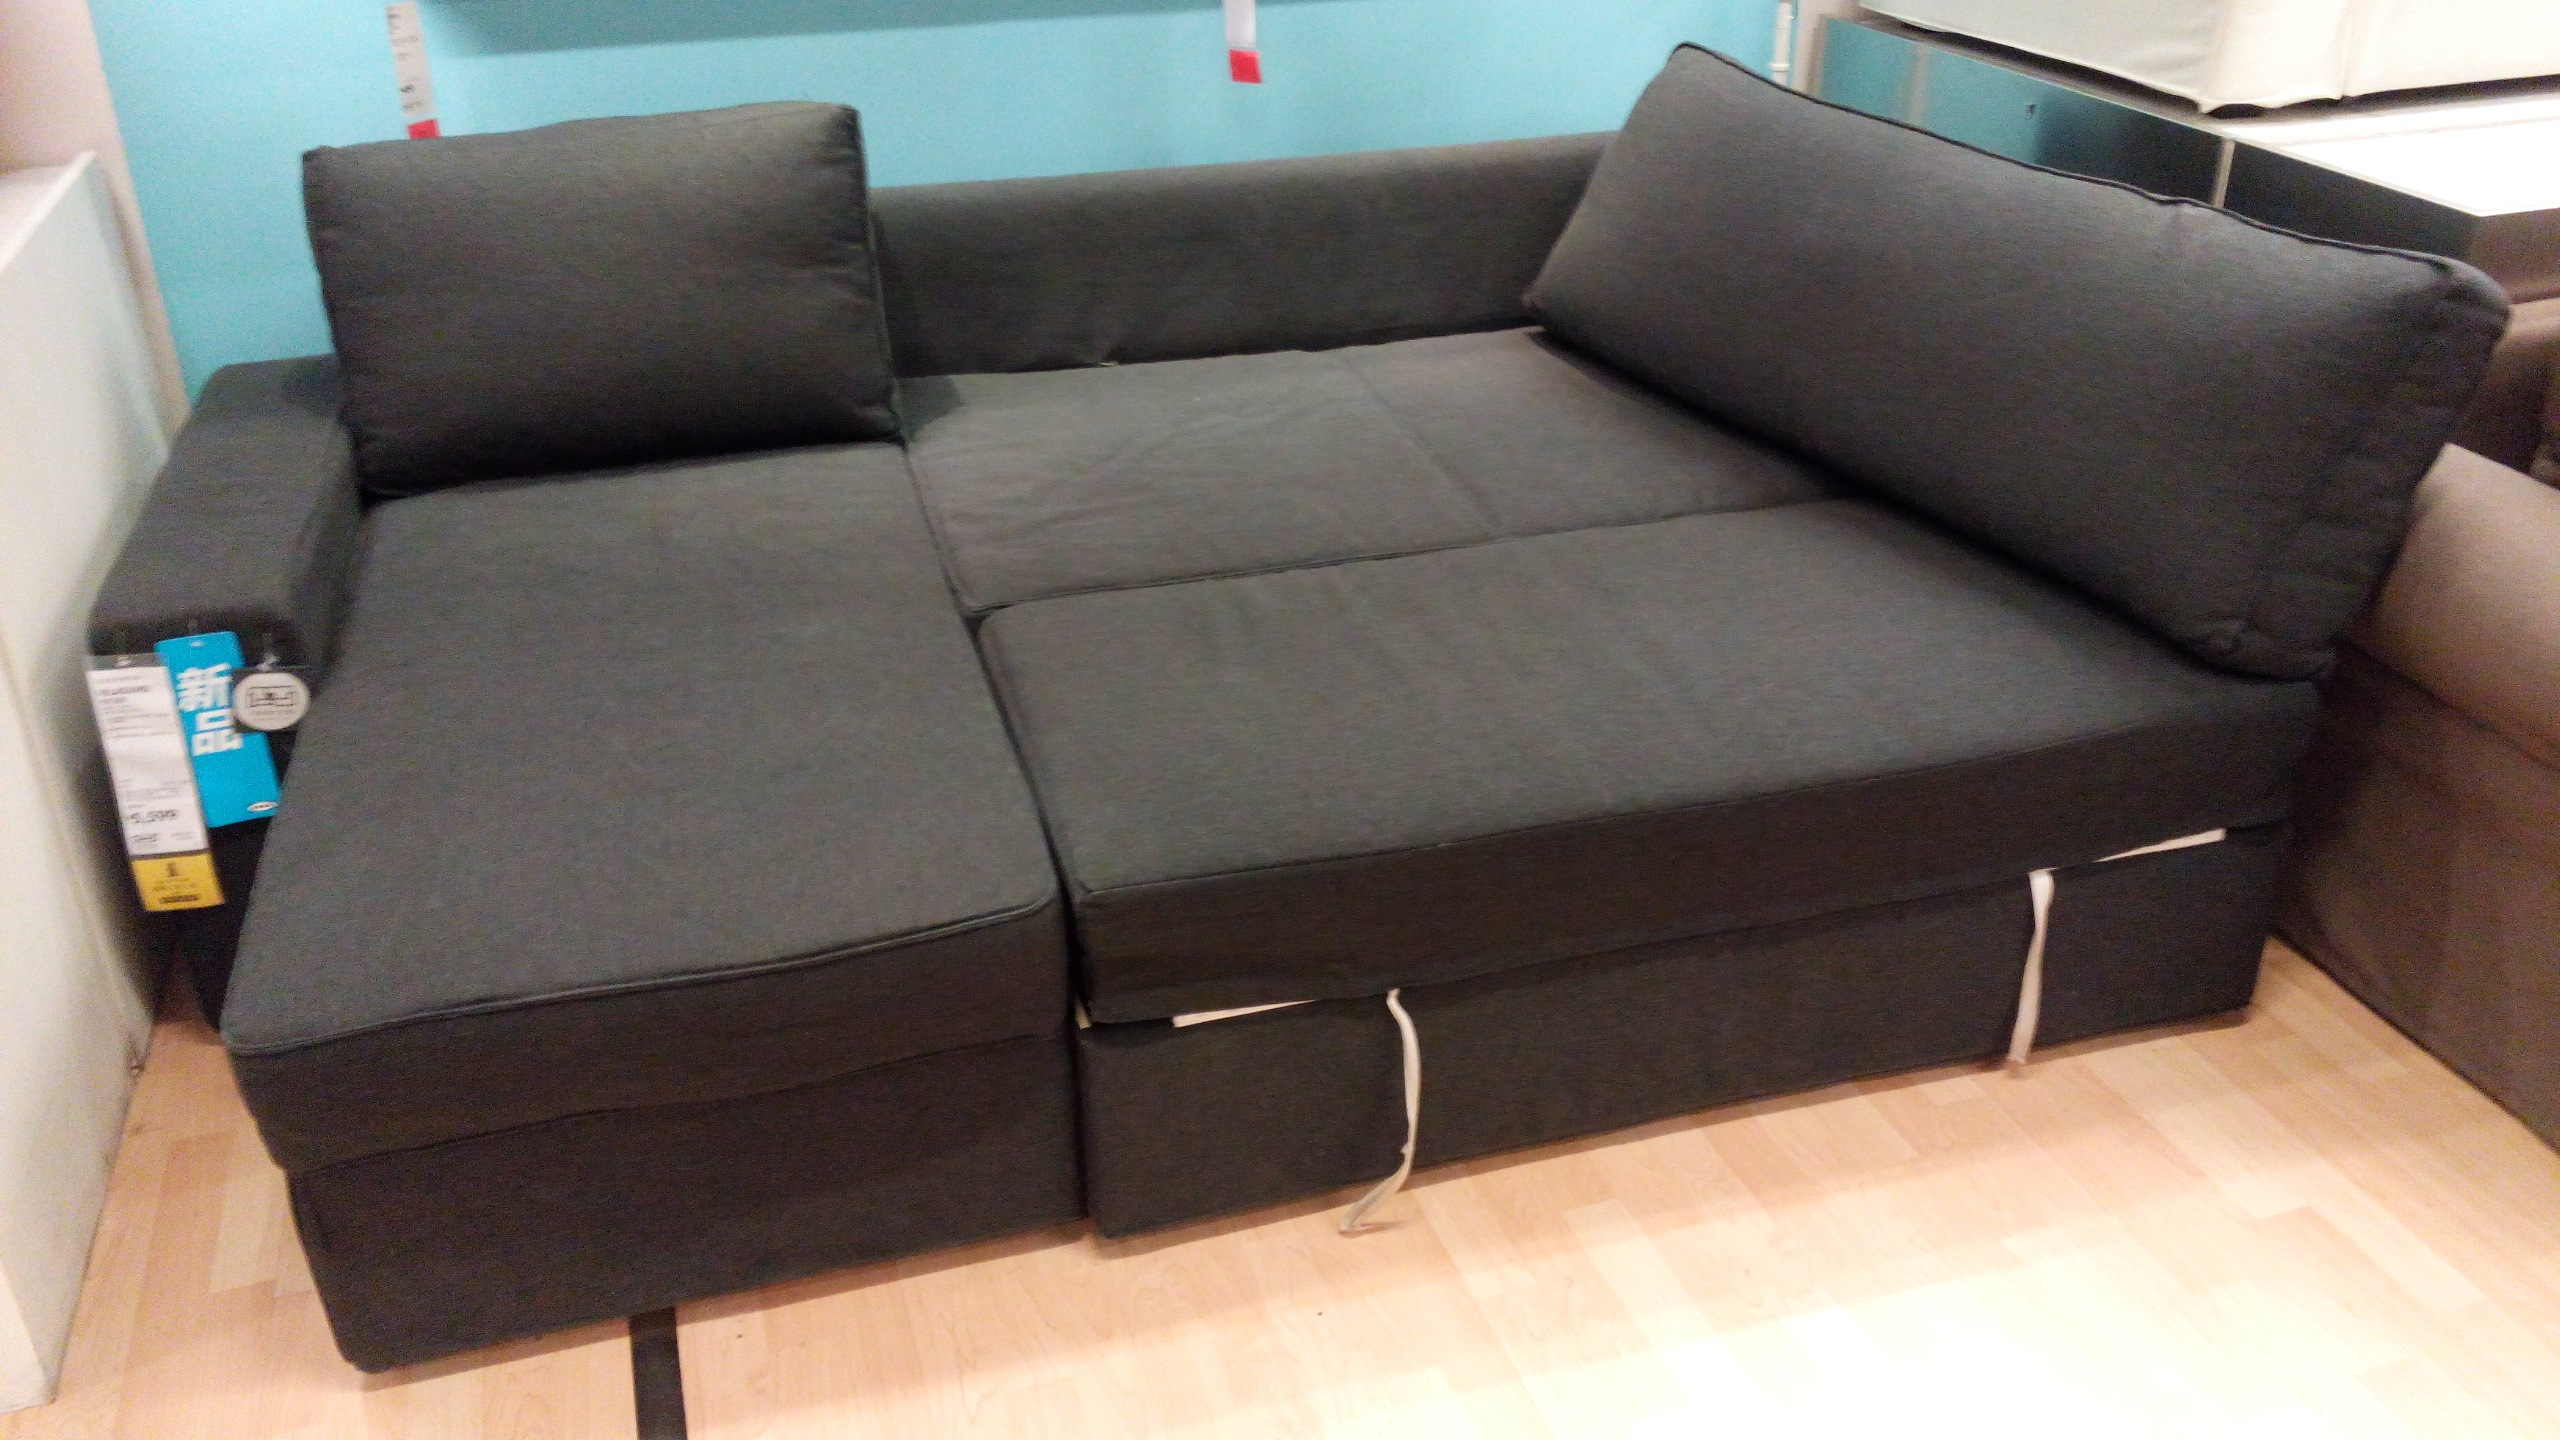 Top 10 Ikea Sofa Beds Reviewed Jan 2019 Sleep Good